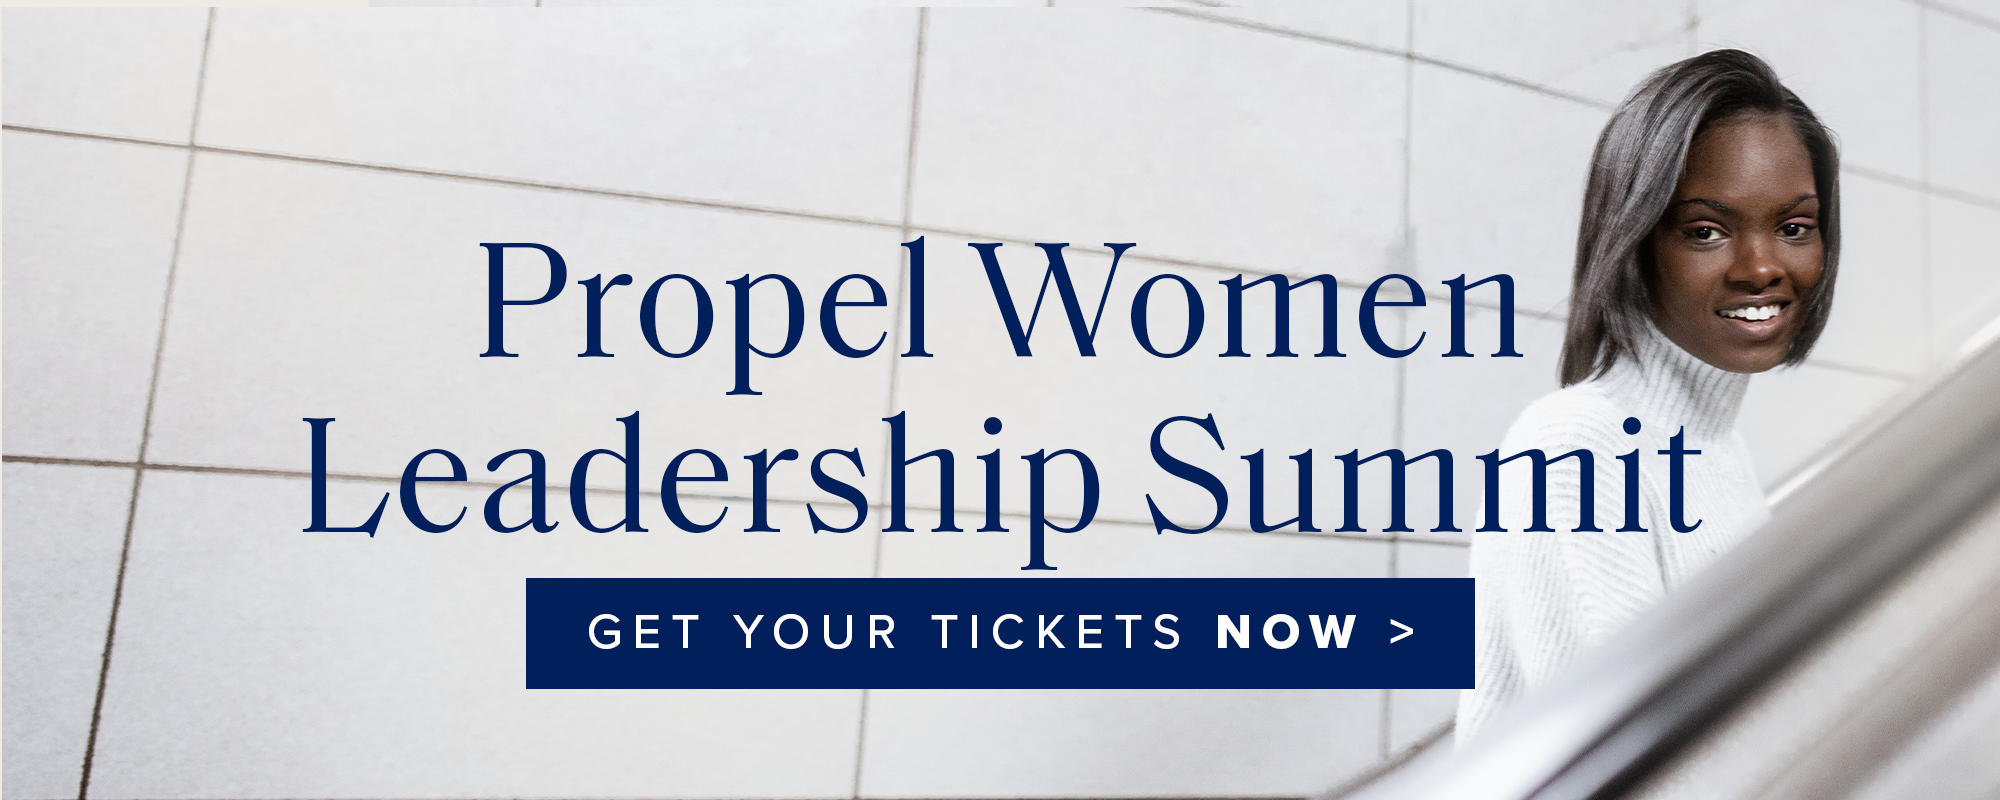 Propel Leadership Summit